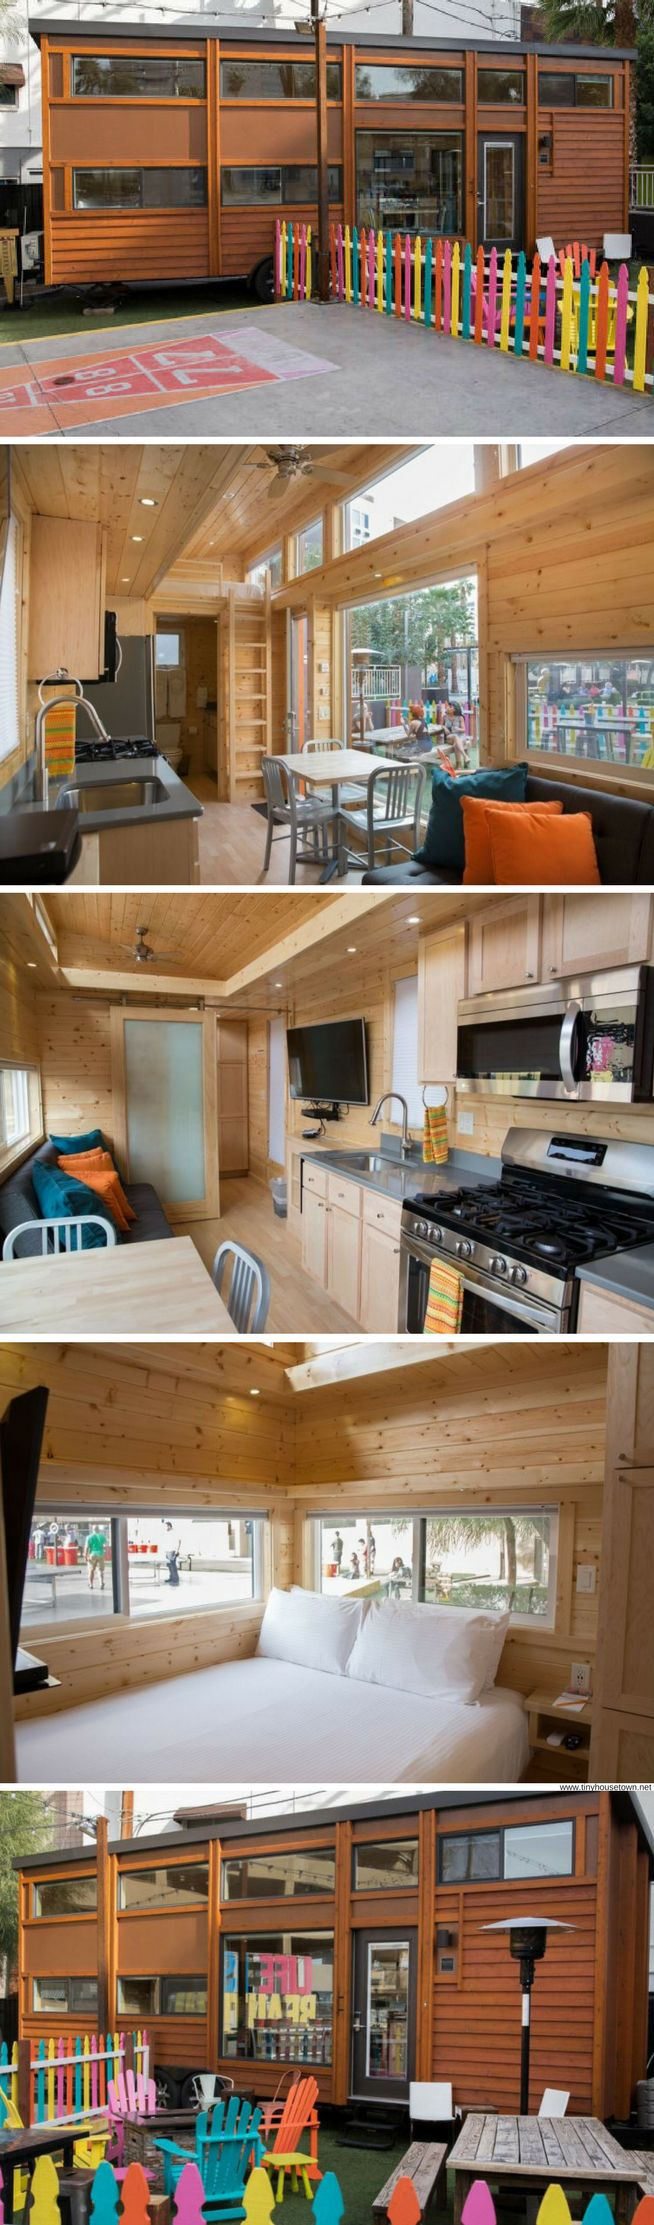 Would be cool to rent and see how we like Tony host living! The Sugar Shack: a tiny house available for rent in Las Vegas